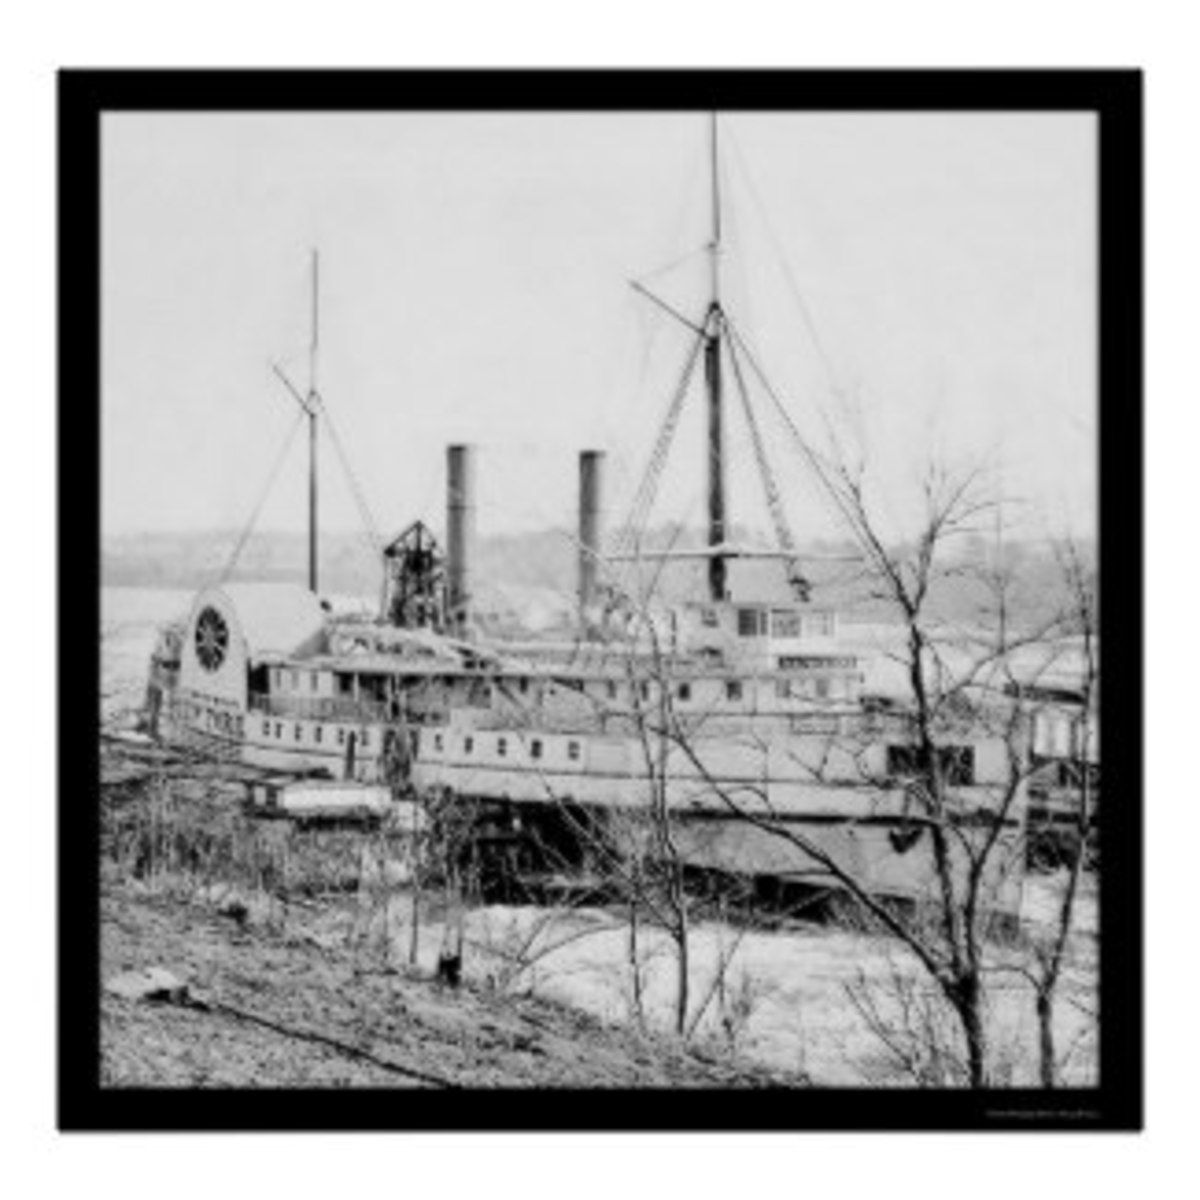 The steamship New York that took released prisoners north. The photo was taken in 1865 as it waited for an exchange of prisoners at Aiken's Landing, Virginia.